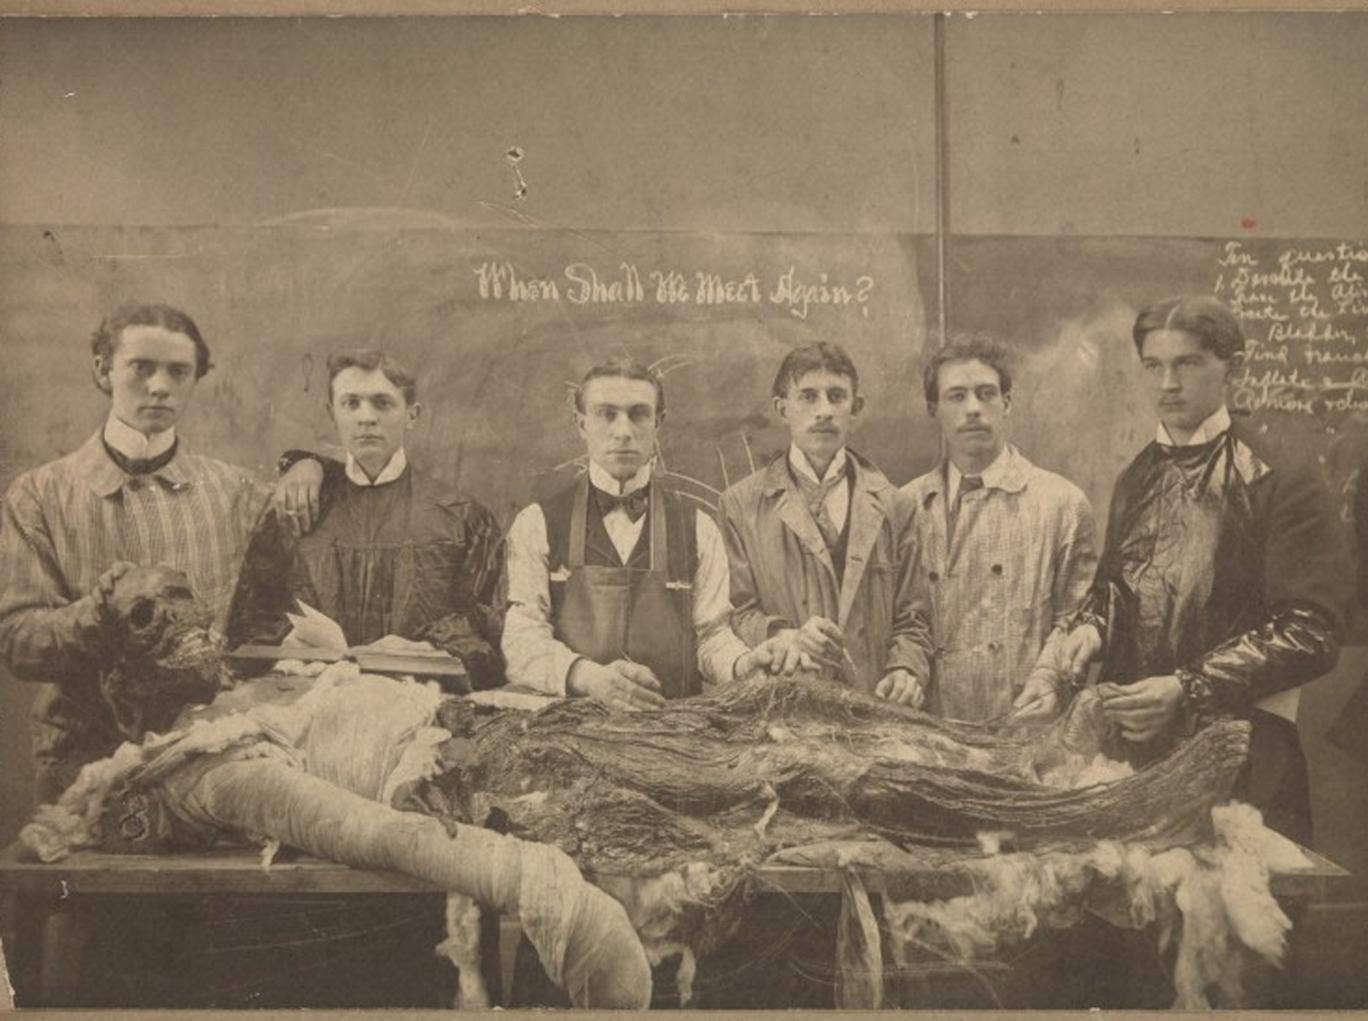 Victorian medical students learn to make light of death